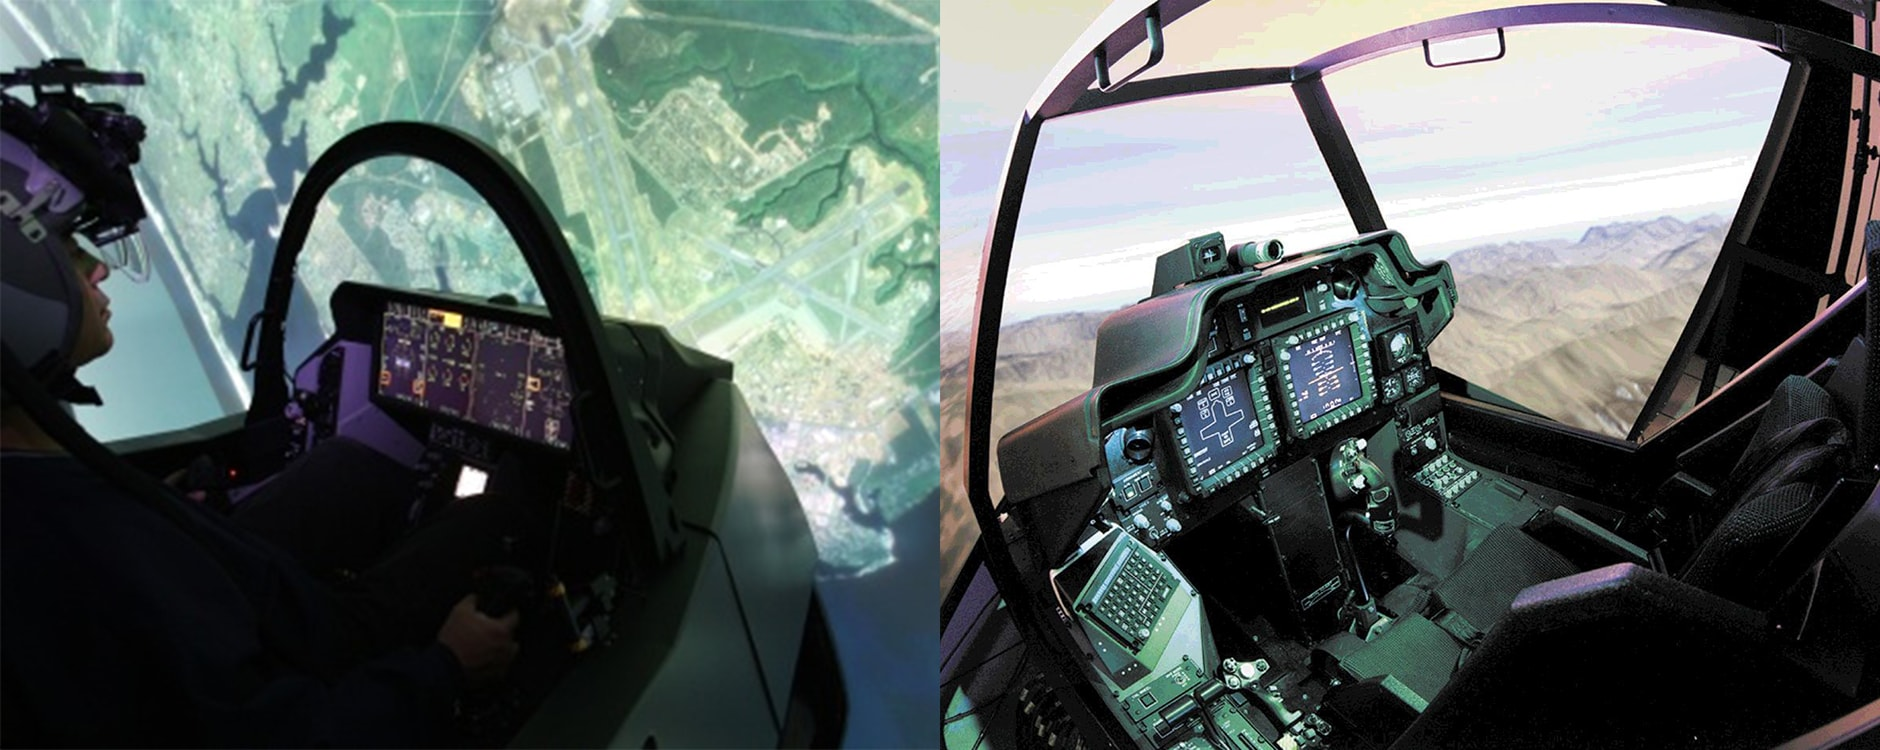 RGB Spectrum Defense and Aerospace Video Display Solutions